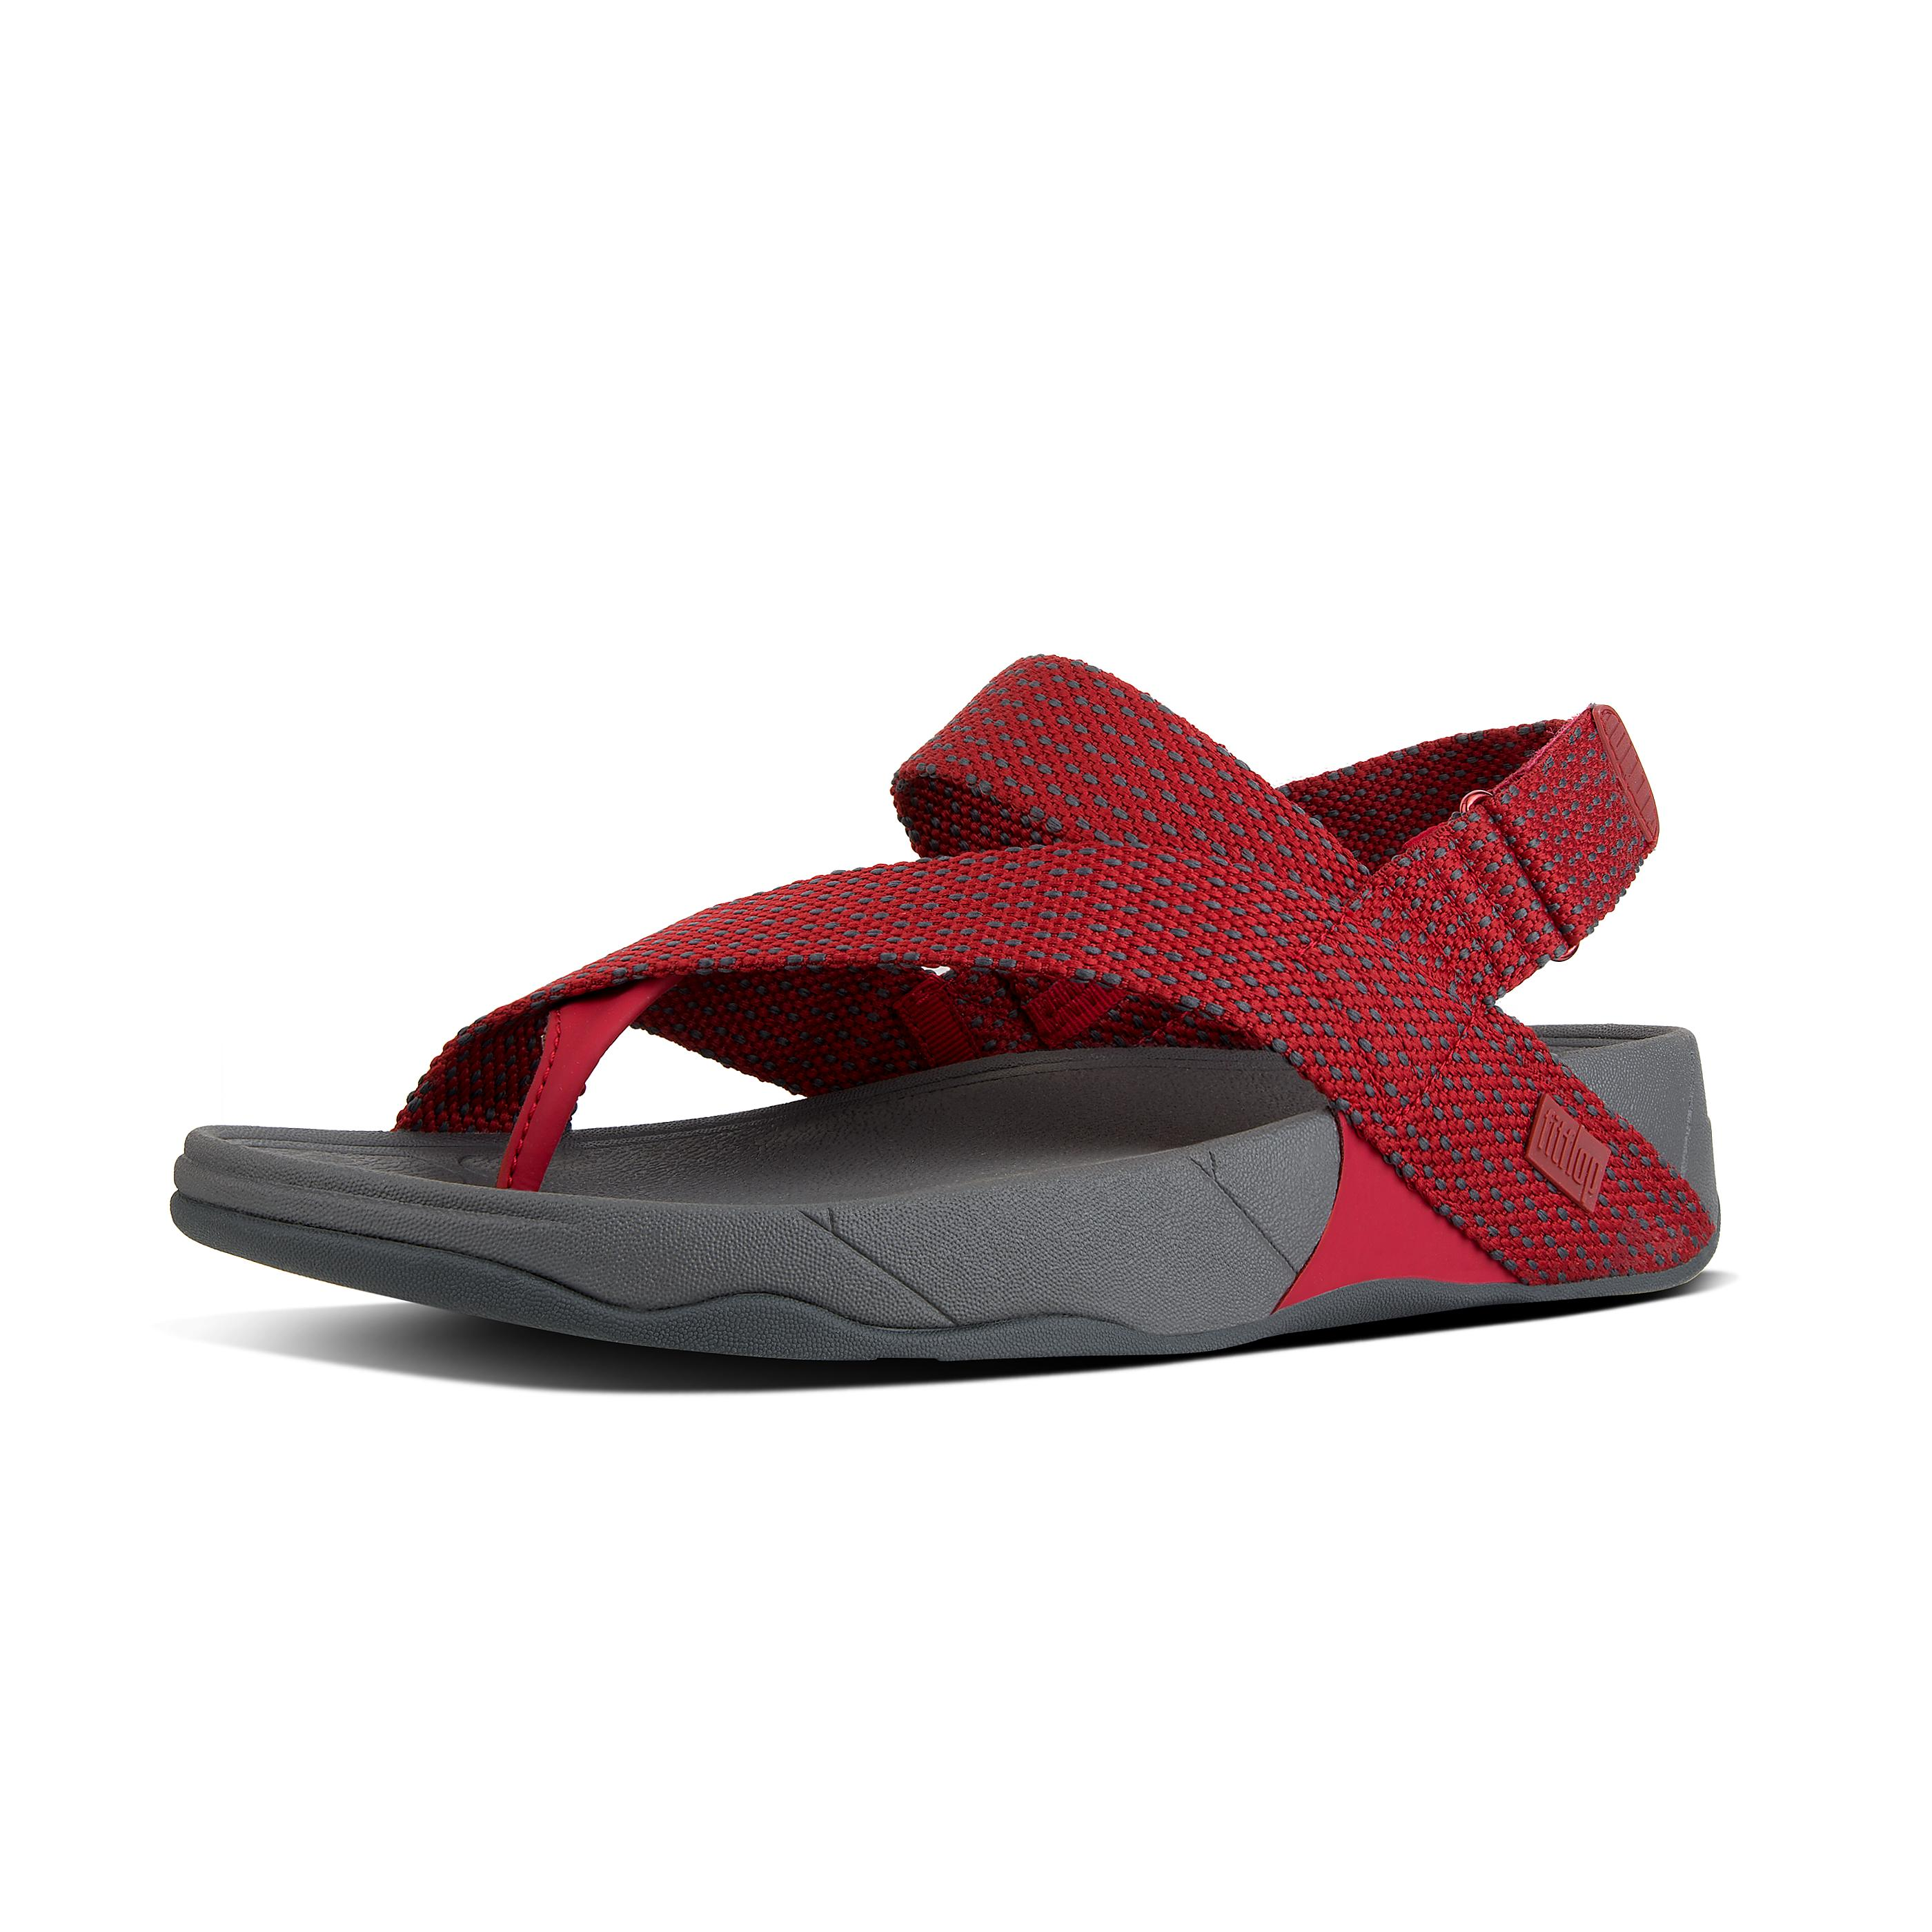 0b08cbd8eb23 Fitflop Store In Germany